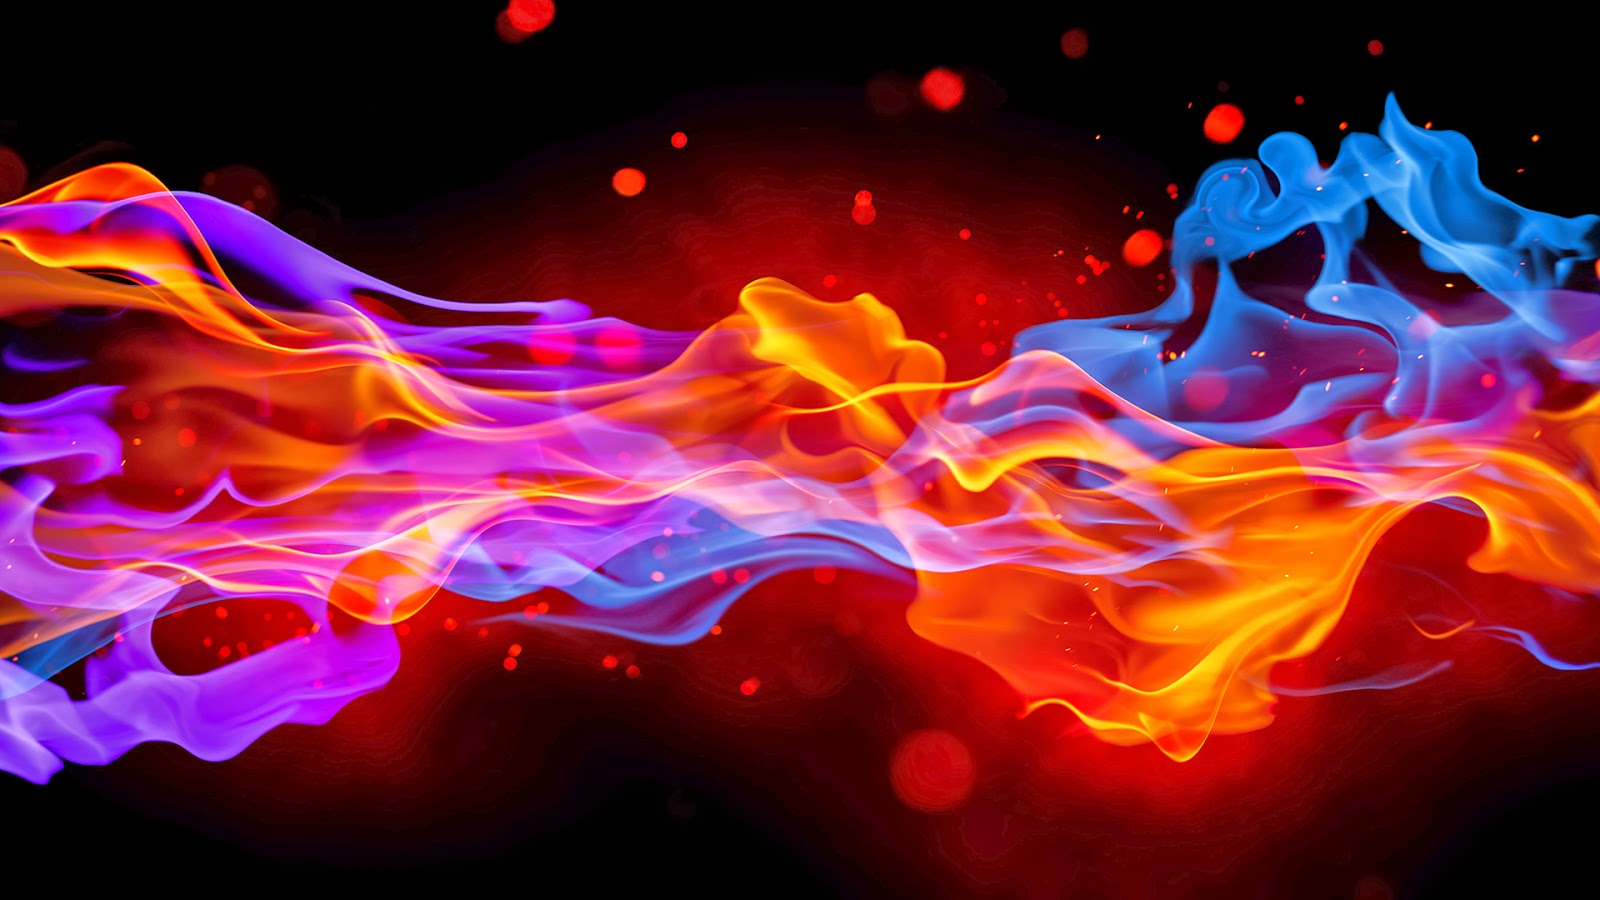 [43+] Red and Blue Fire Wallpaper on WallpaperSafari Blue Fire A